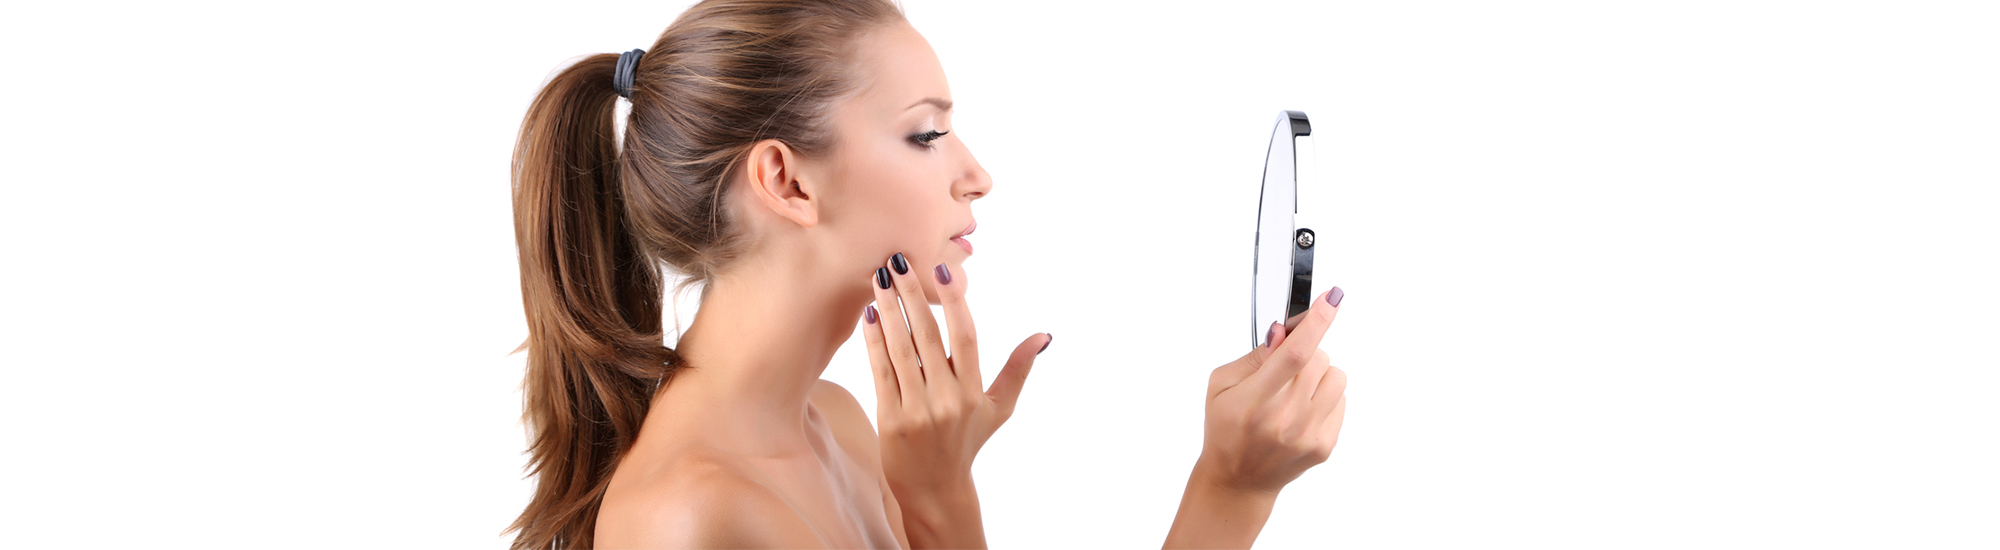 Ayurvedic treatment for Acne References